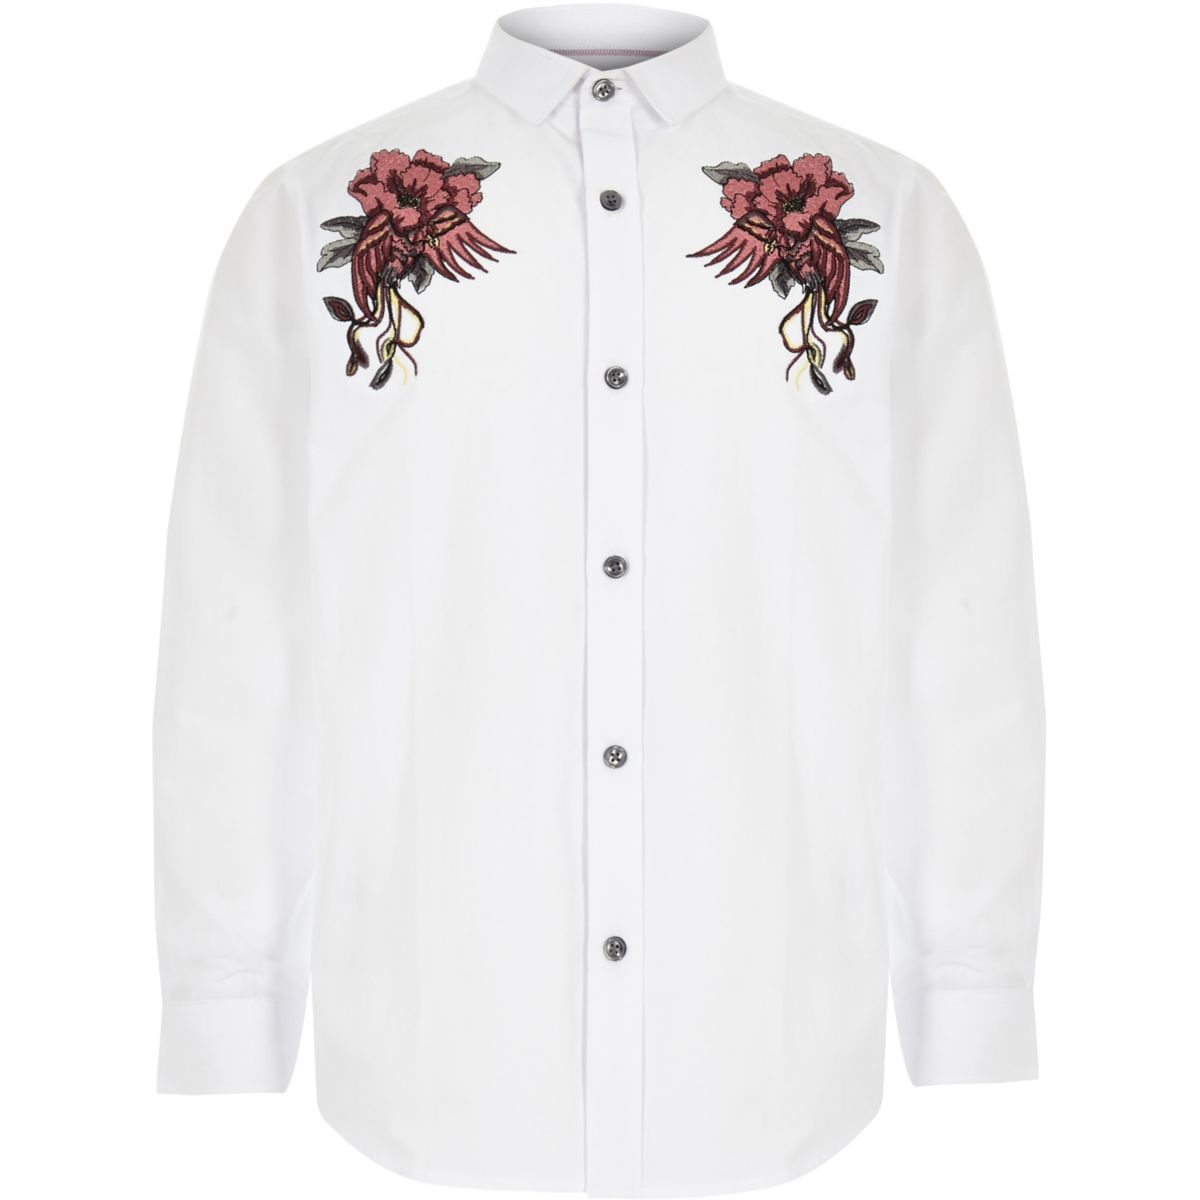 Boys white embroidered long sleeve shirt